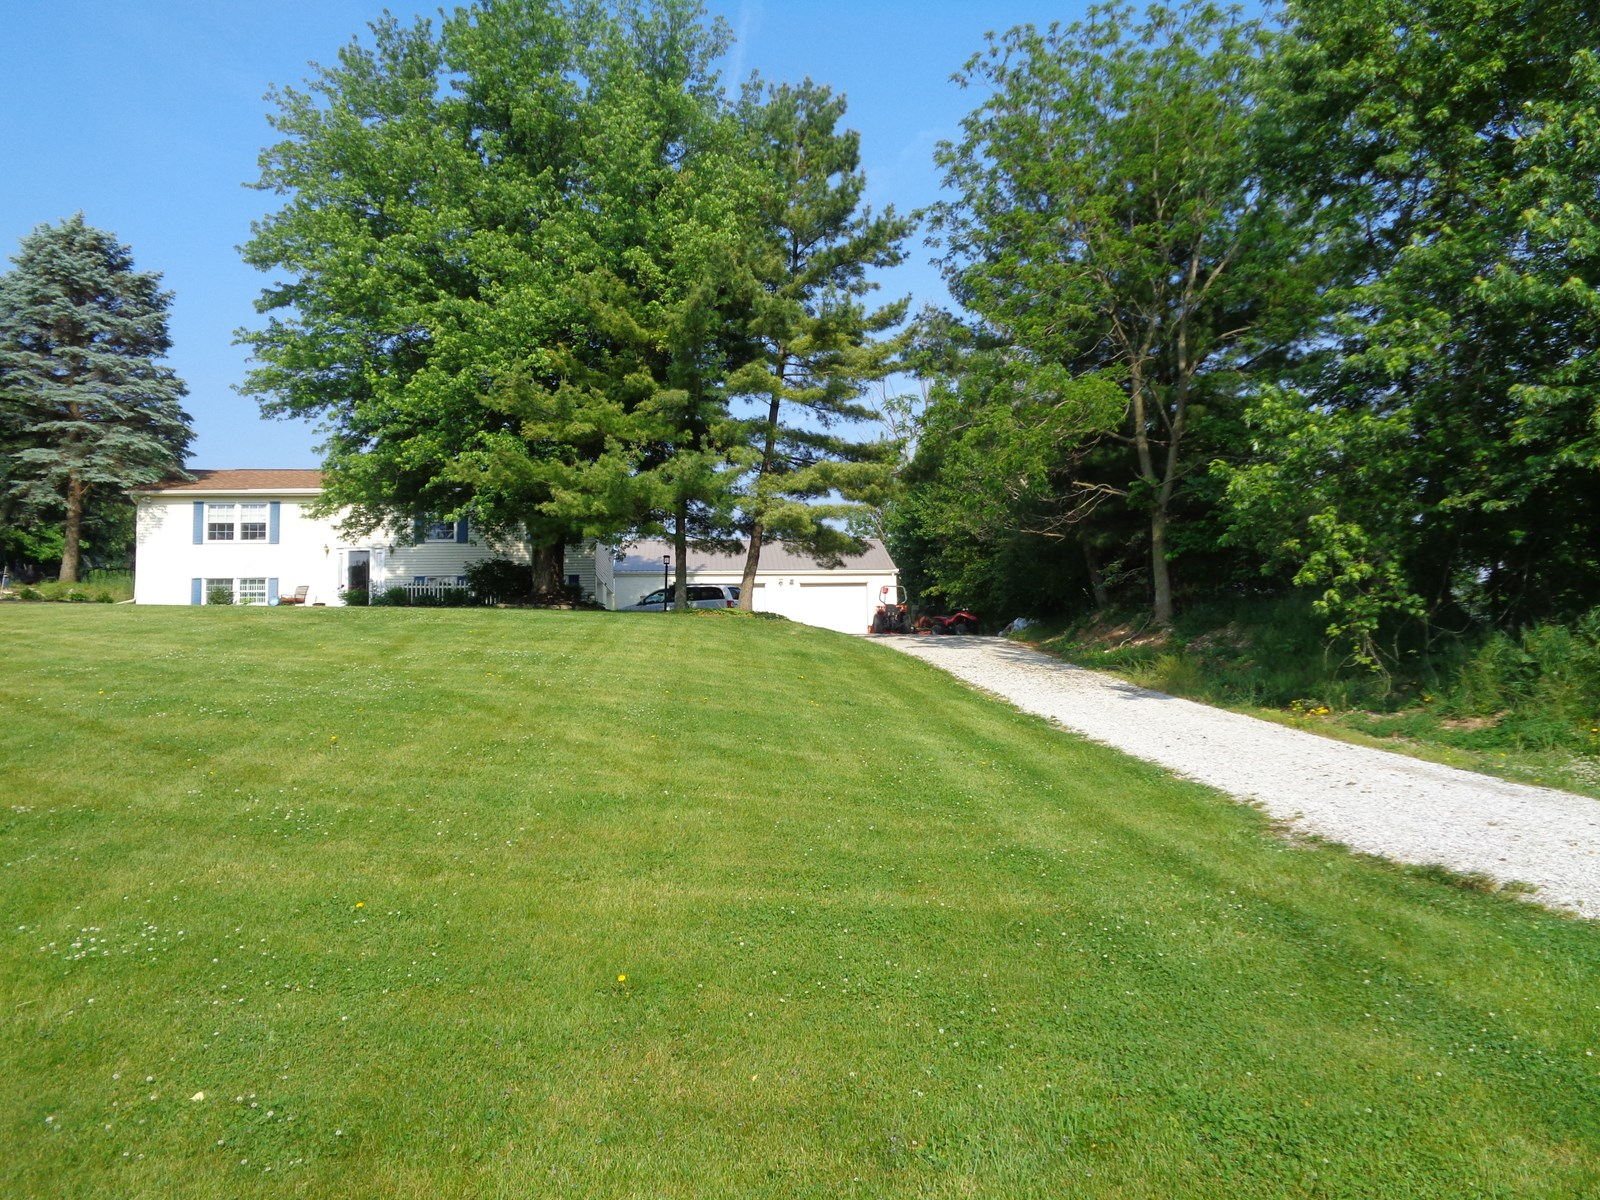 Home in the Country, Big Walnut Schools, Detached Shop,